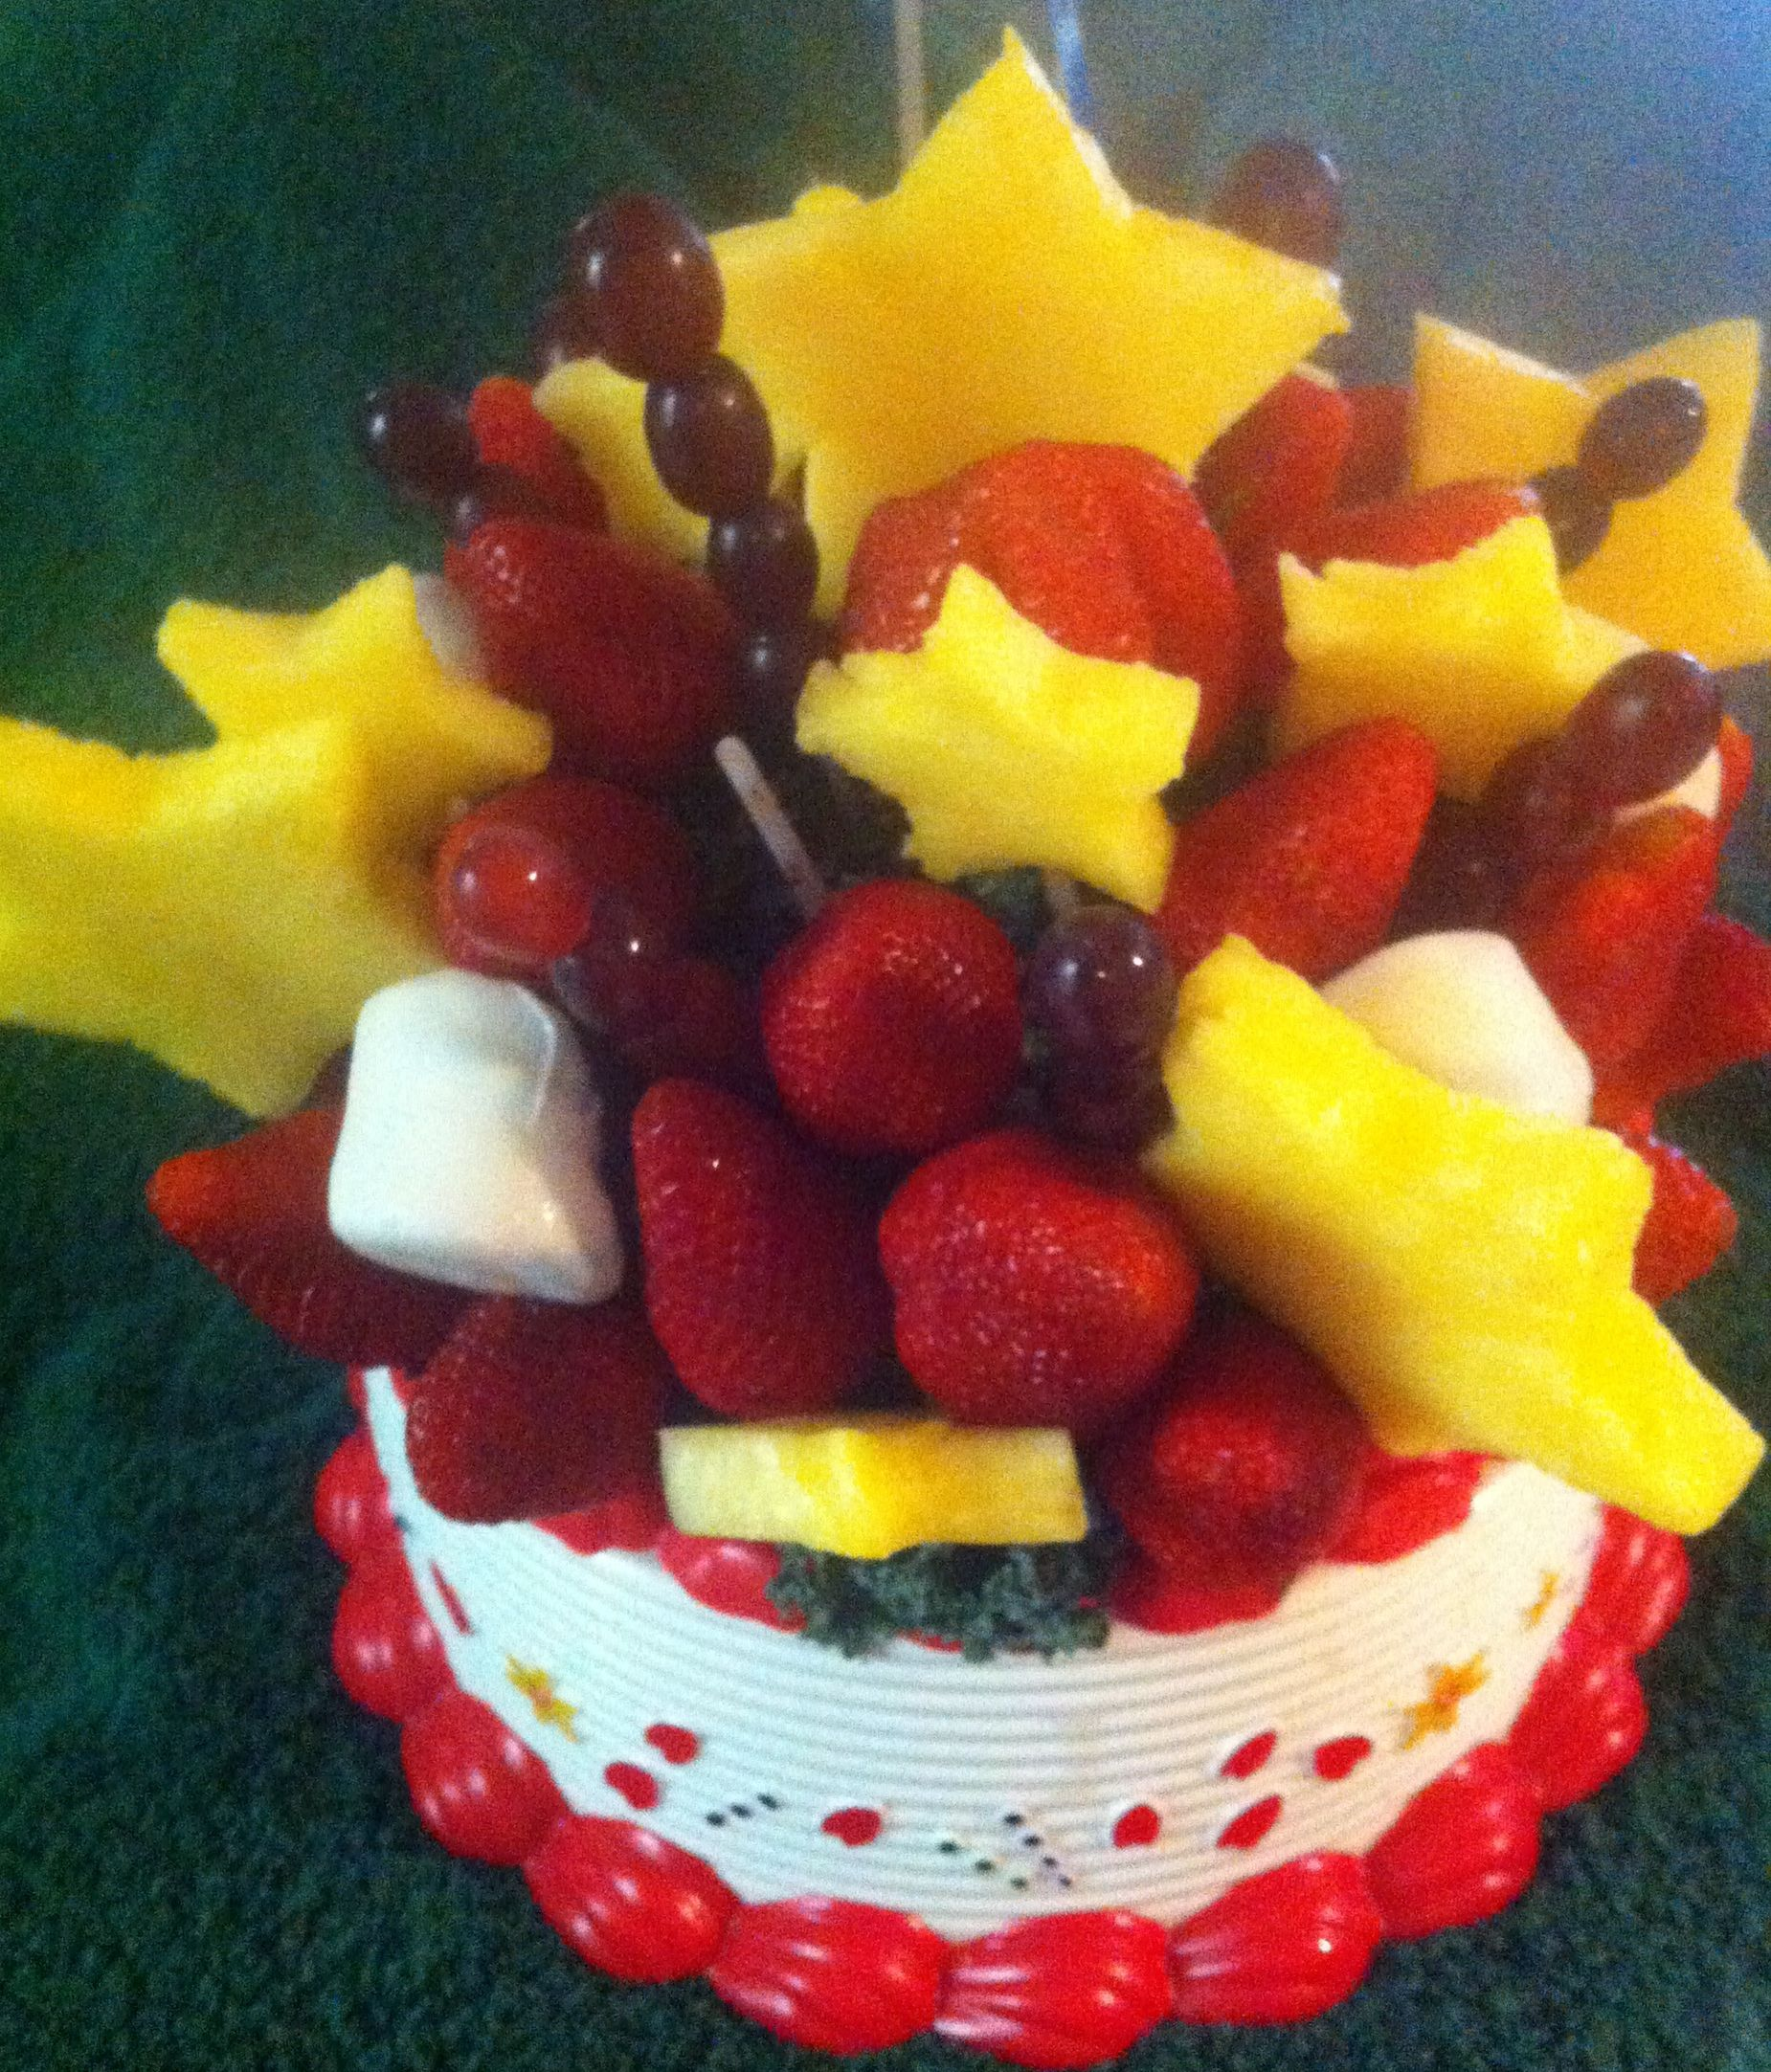 My healthy Edible Arrangement birthday cake from Worf